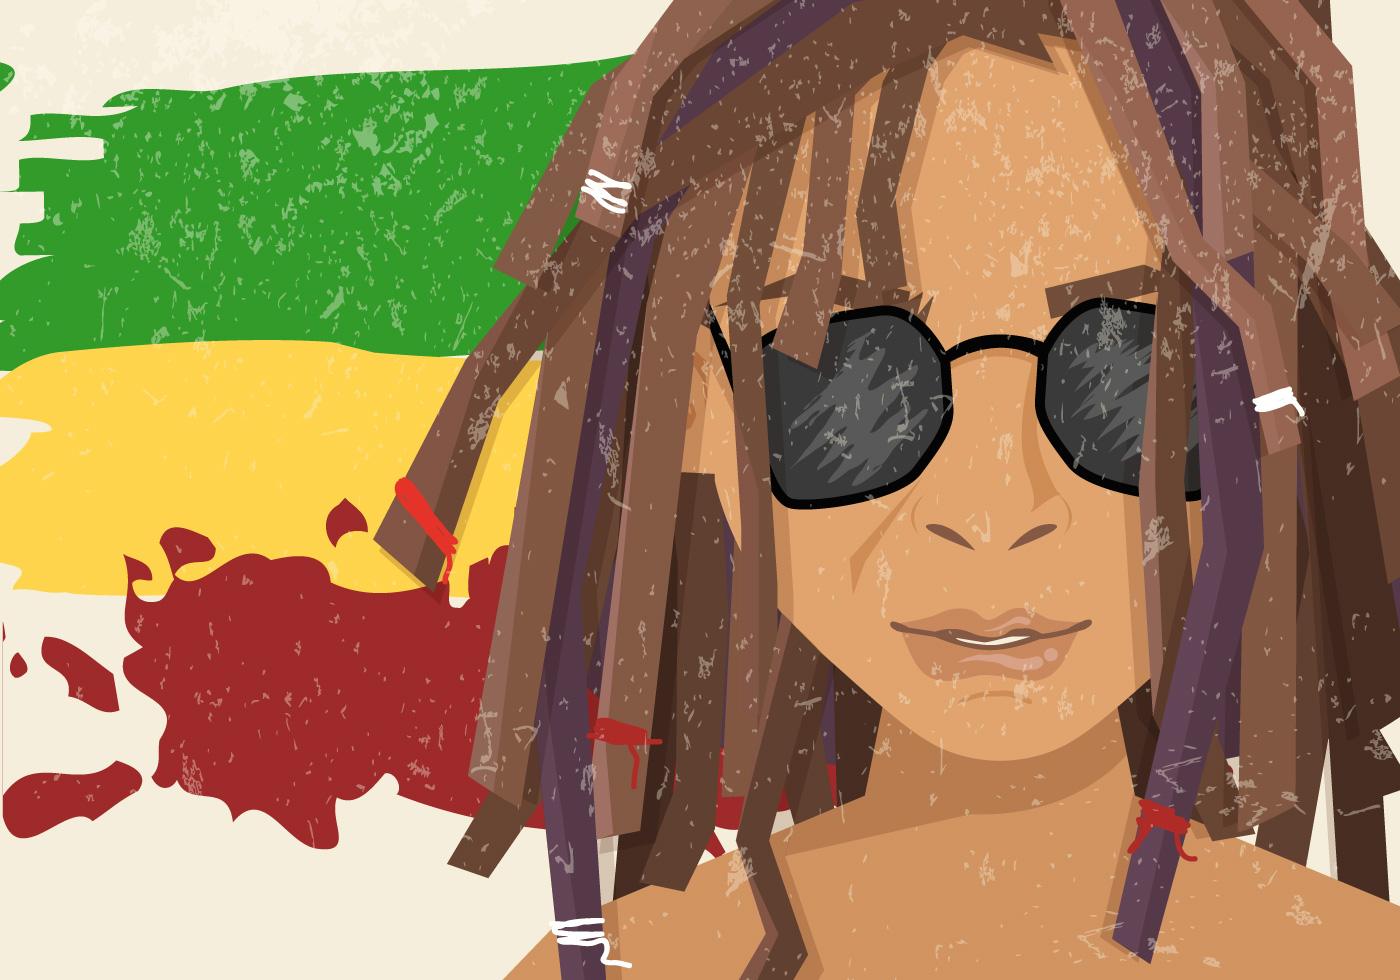 Dreads Regae Wearing Sunglasses - Download Free Vector Art ...